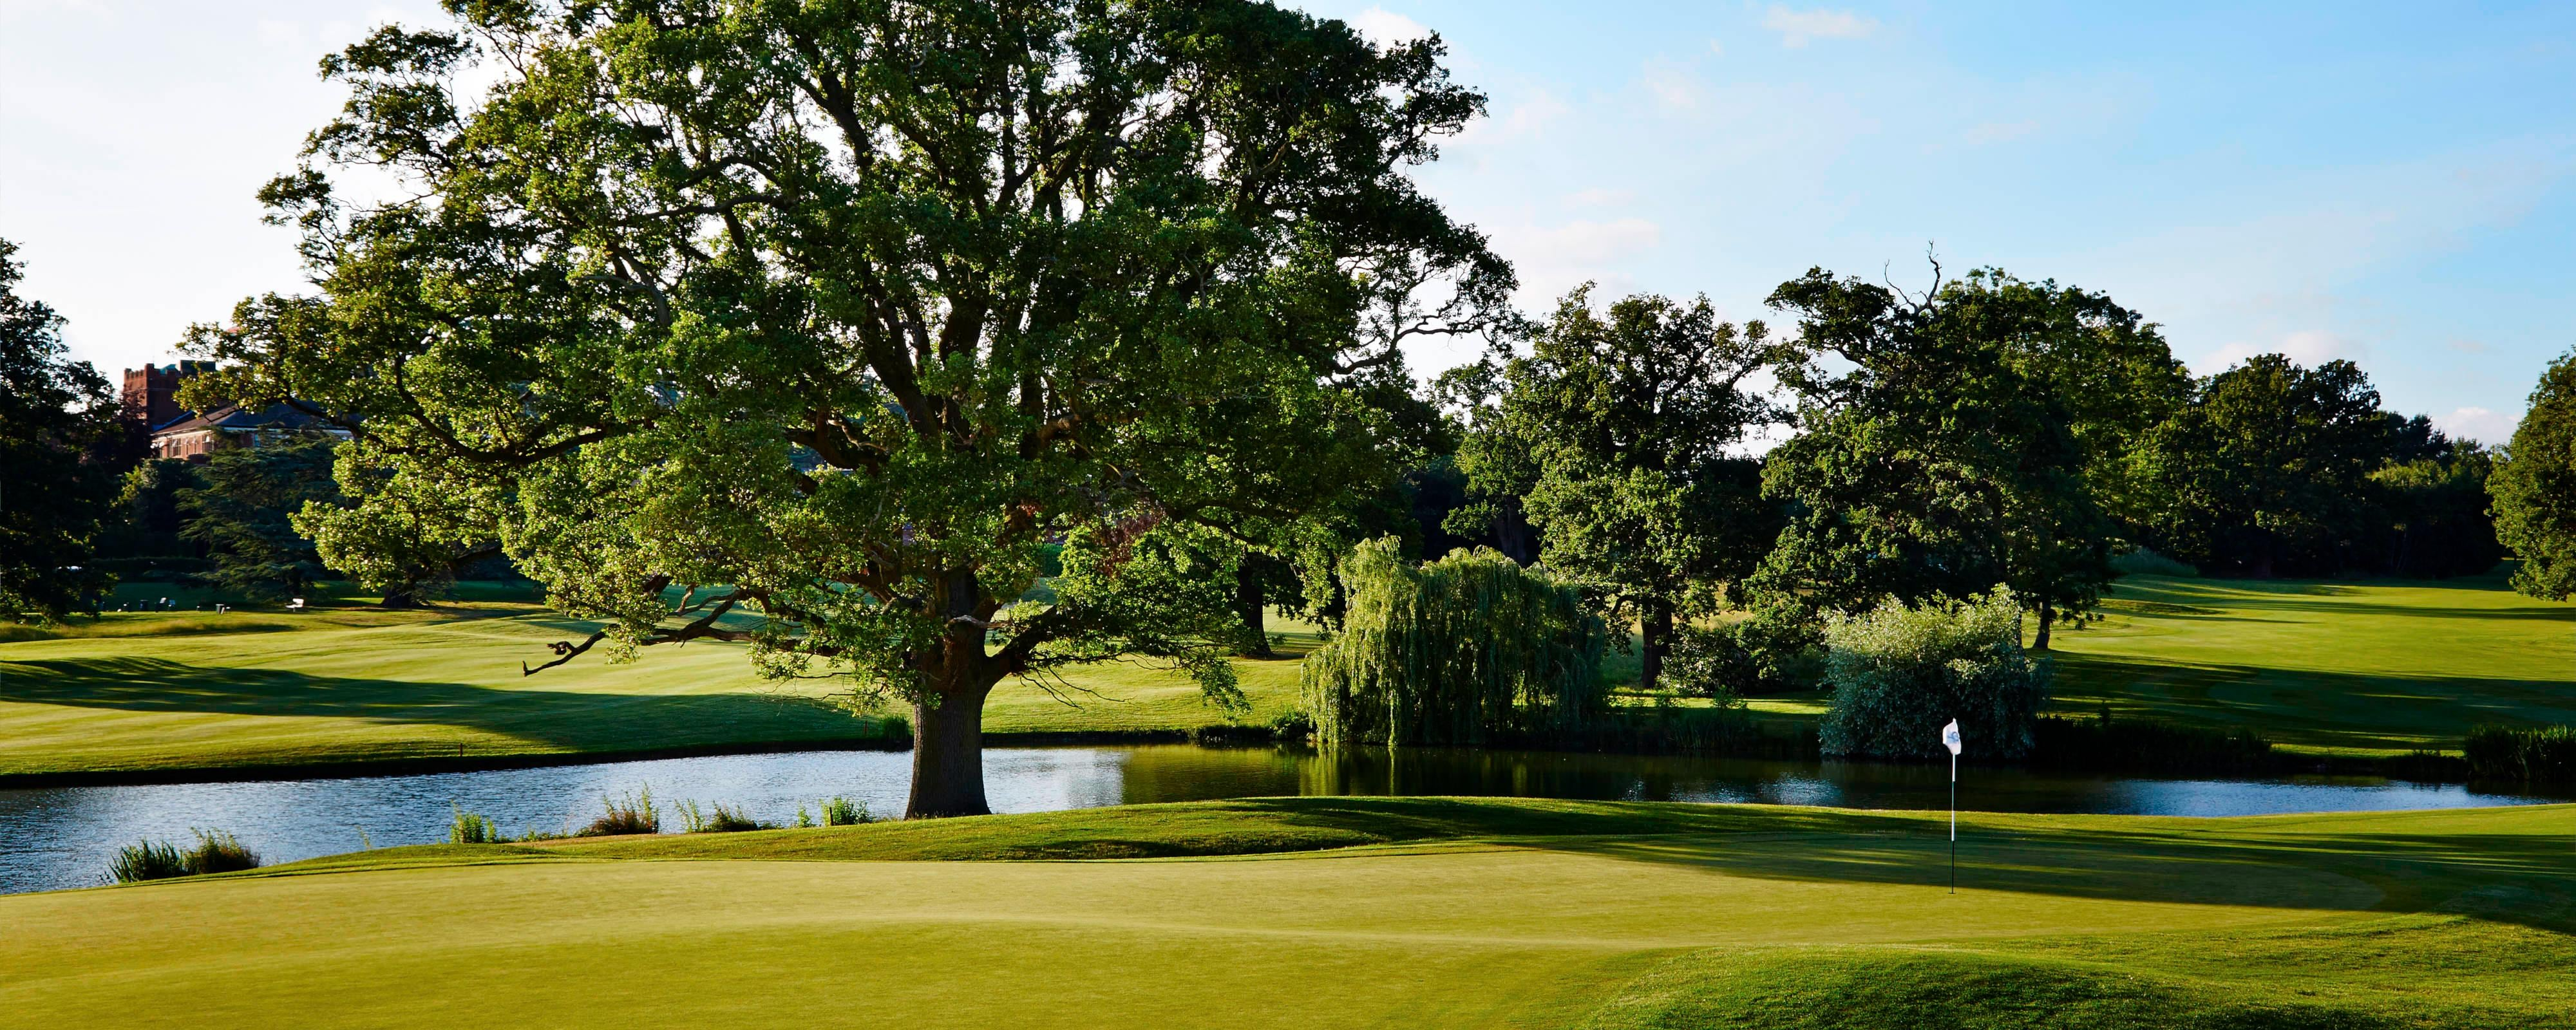 Hertfordshire Golf Course | Hanbury Manor Marriott Hotel ...